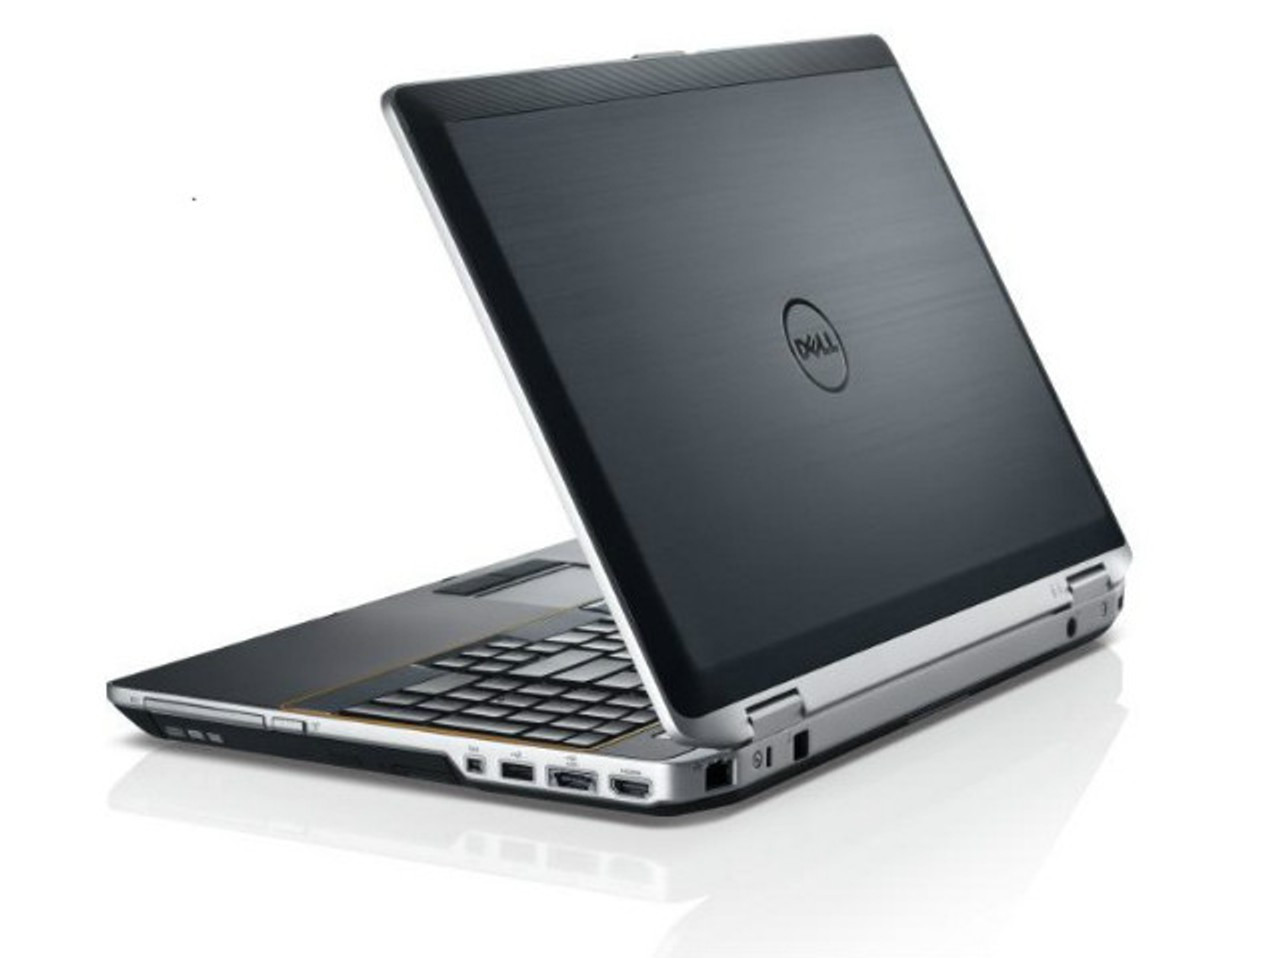 Dell Latitude E6520 Laptop Core i5 2.5GHz, 4GB Ram, 250GB HDD, DVD-RW, Windows 7 Pro 64 Notebook